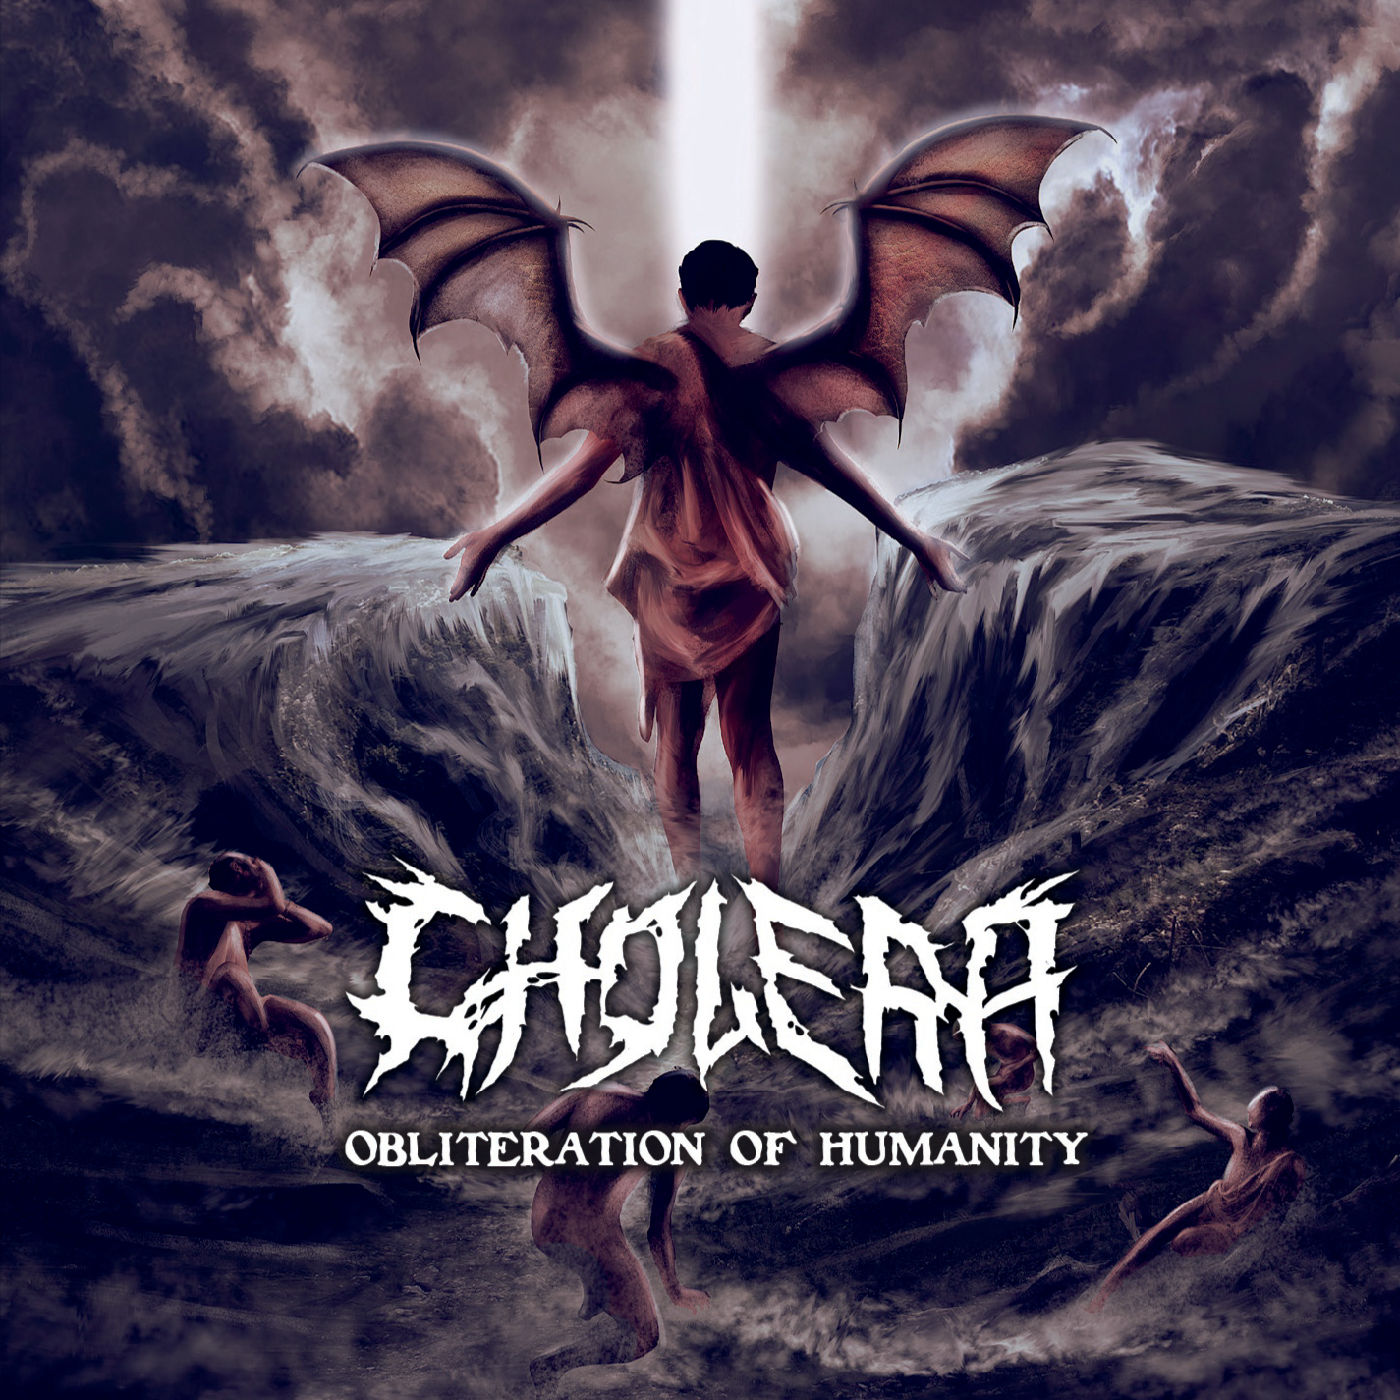 Cholera - Obliteration of Humanity (2019)